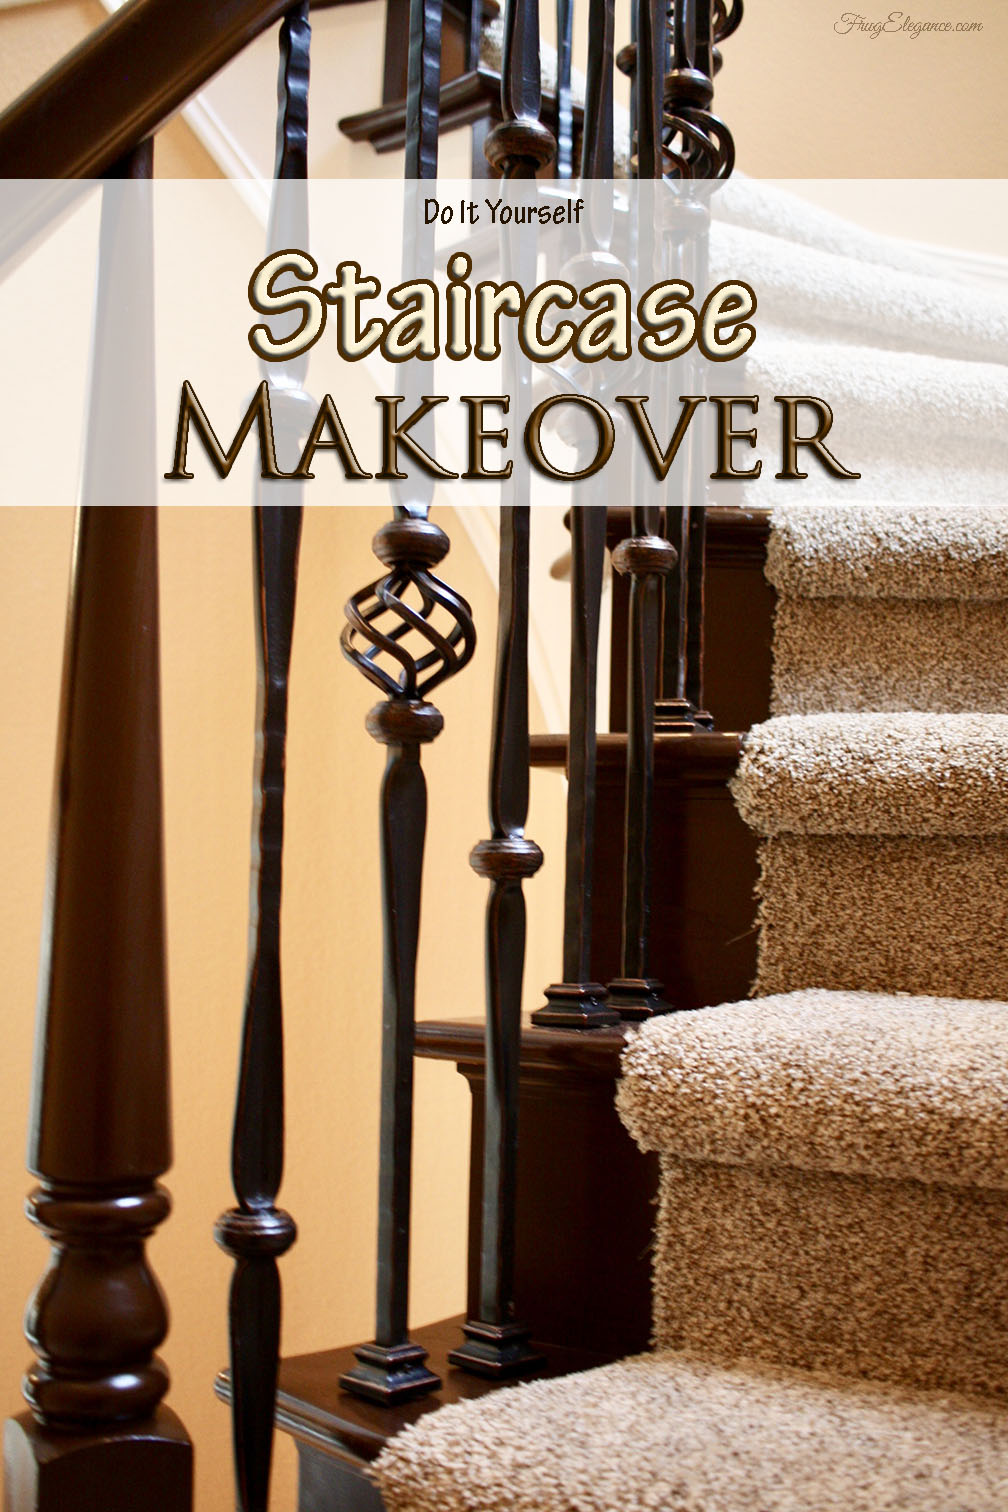 Do it yourself staircase update frugelegance this home improvement project is quite different from our usual we tend to do things that are quick easy but this project is far from that solutioingenieria Images